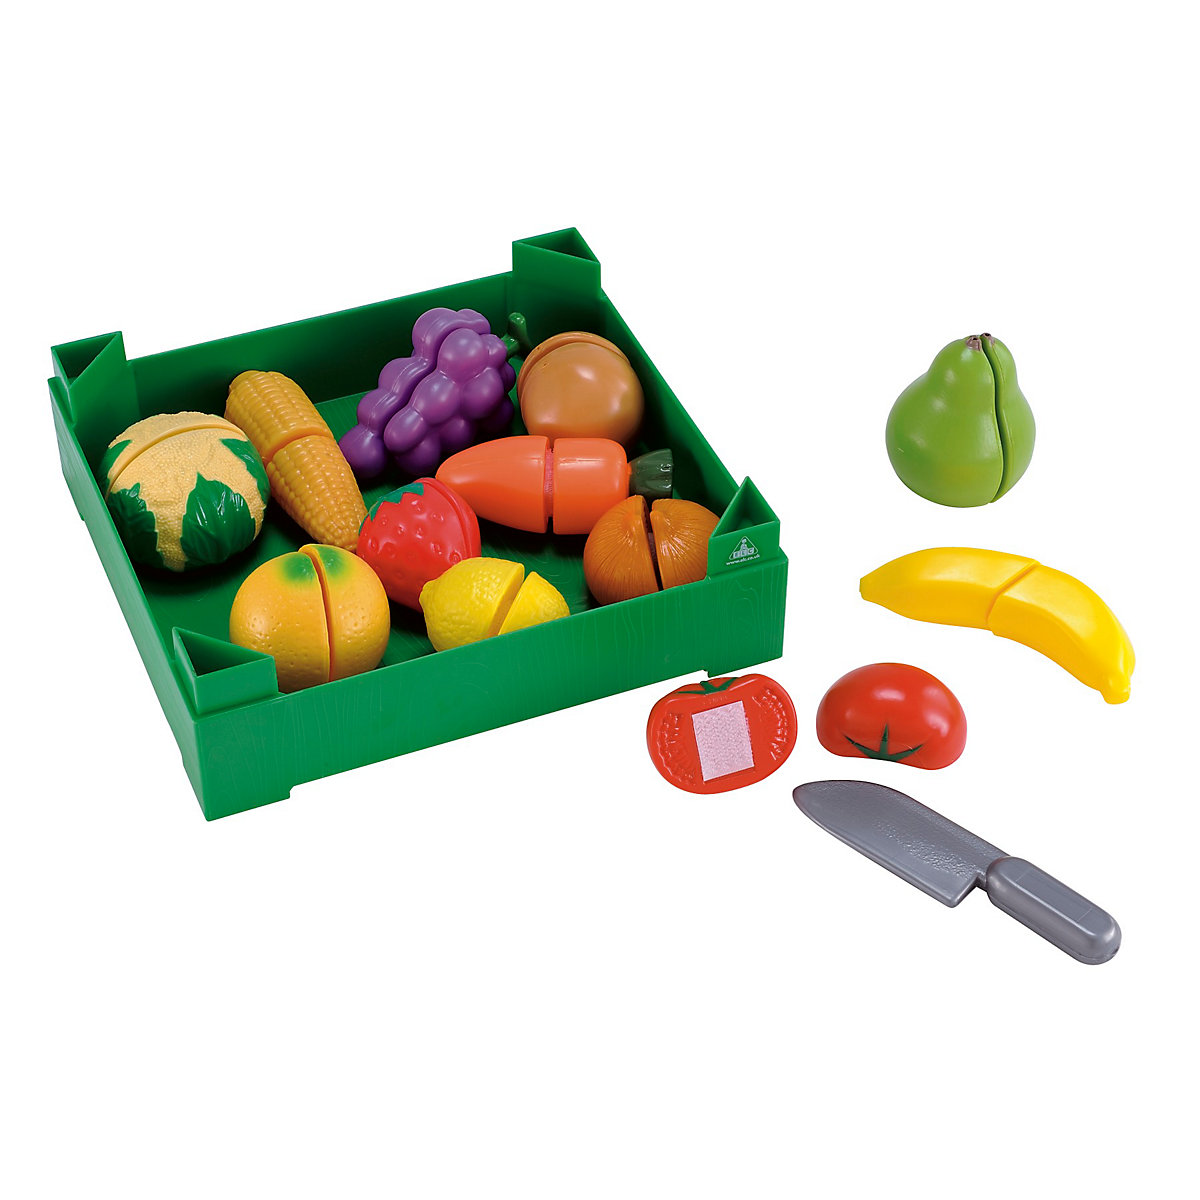 New ELC Boys Girls Crate of Cut Play Fruit Vegetables Toy 3 years - Dressing Up Gifts